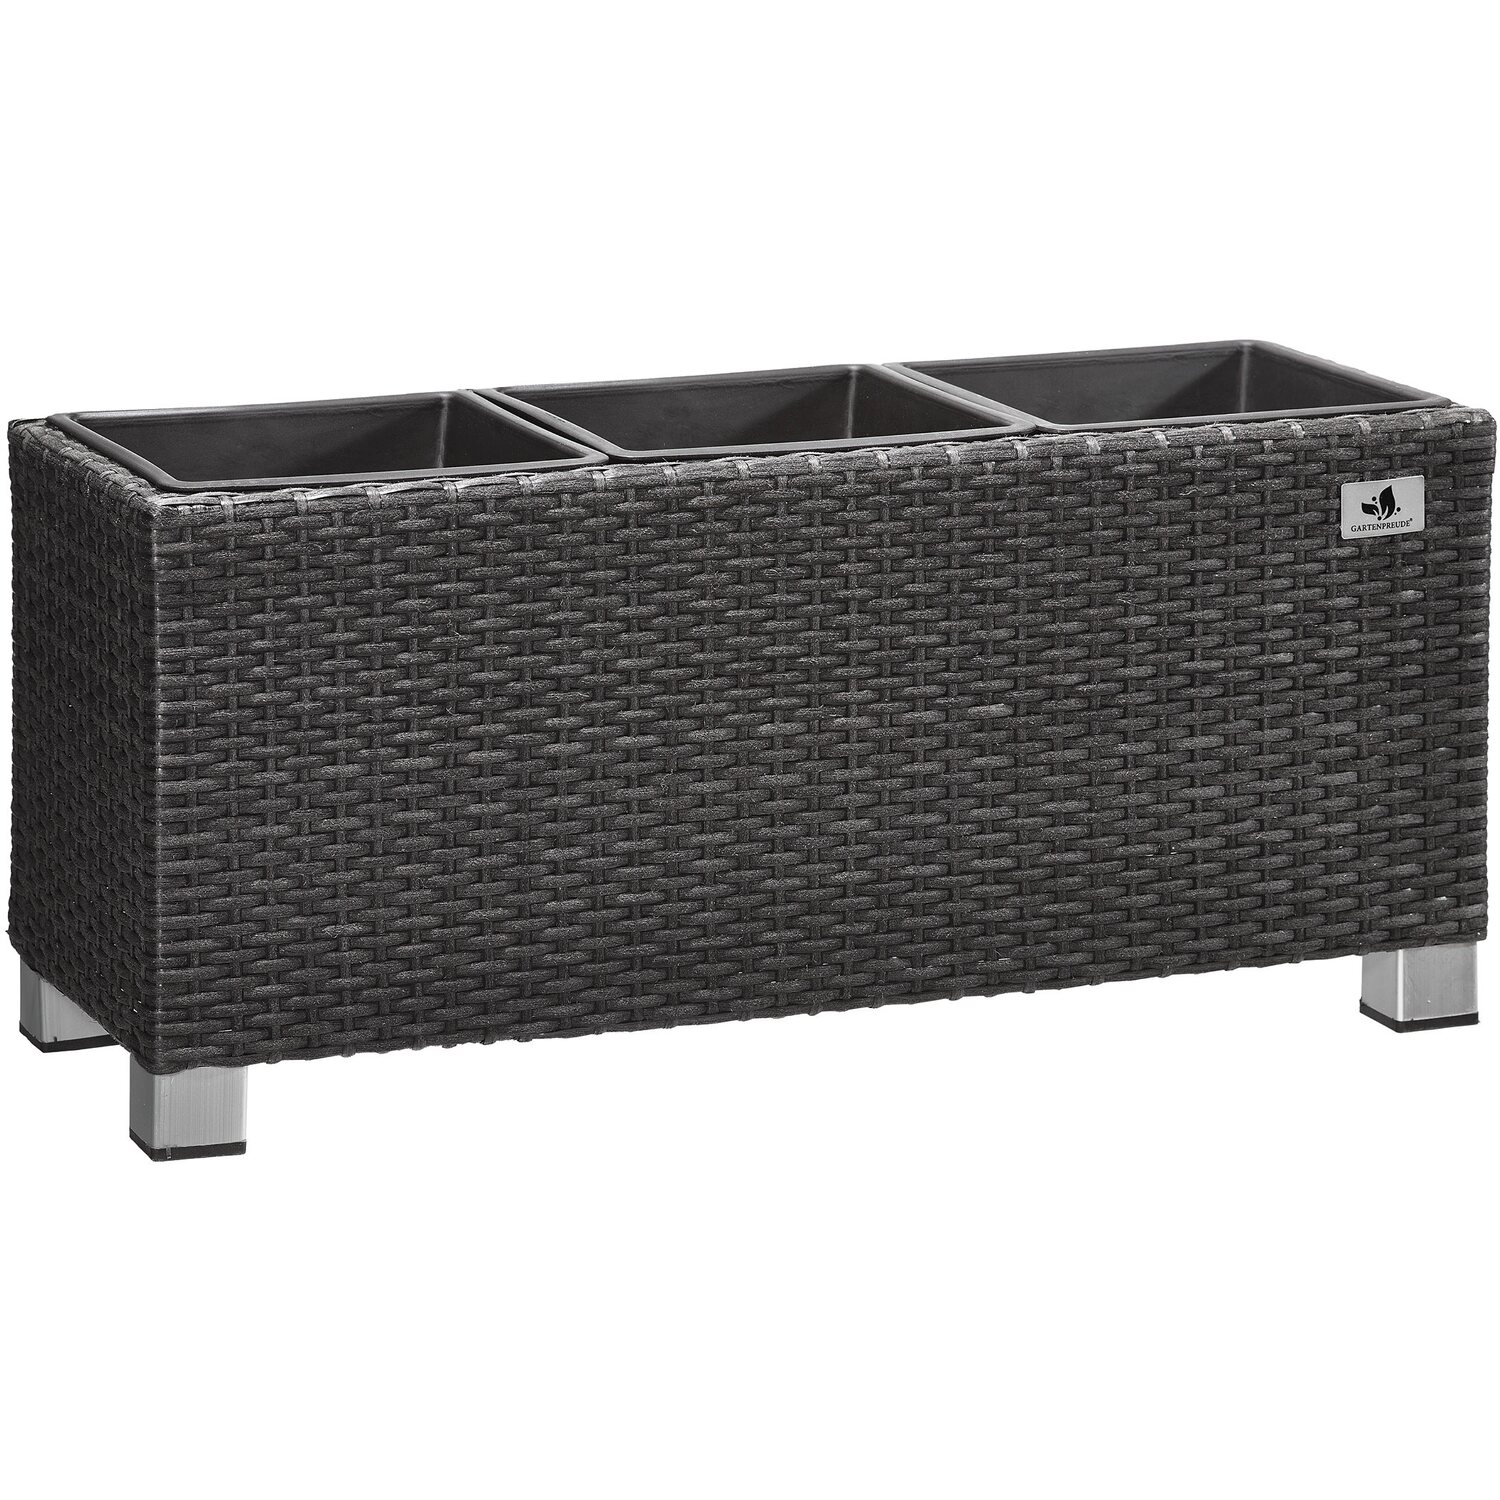 gartenfreude pflanzk bel polyrattan 78 cm x 27 cm anthrazit kaufen bei obi. Black Bedroom Furniture Sets. Home Design Ideas